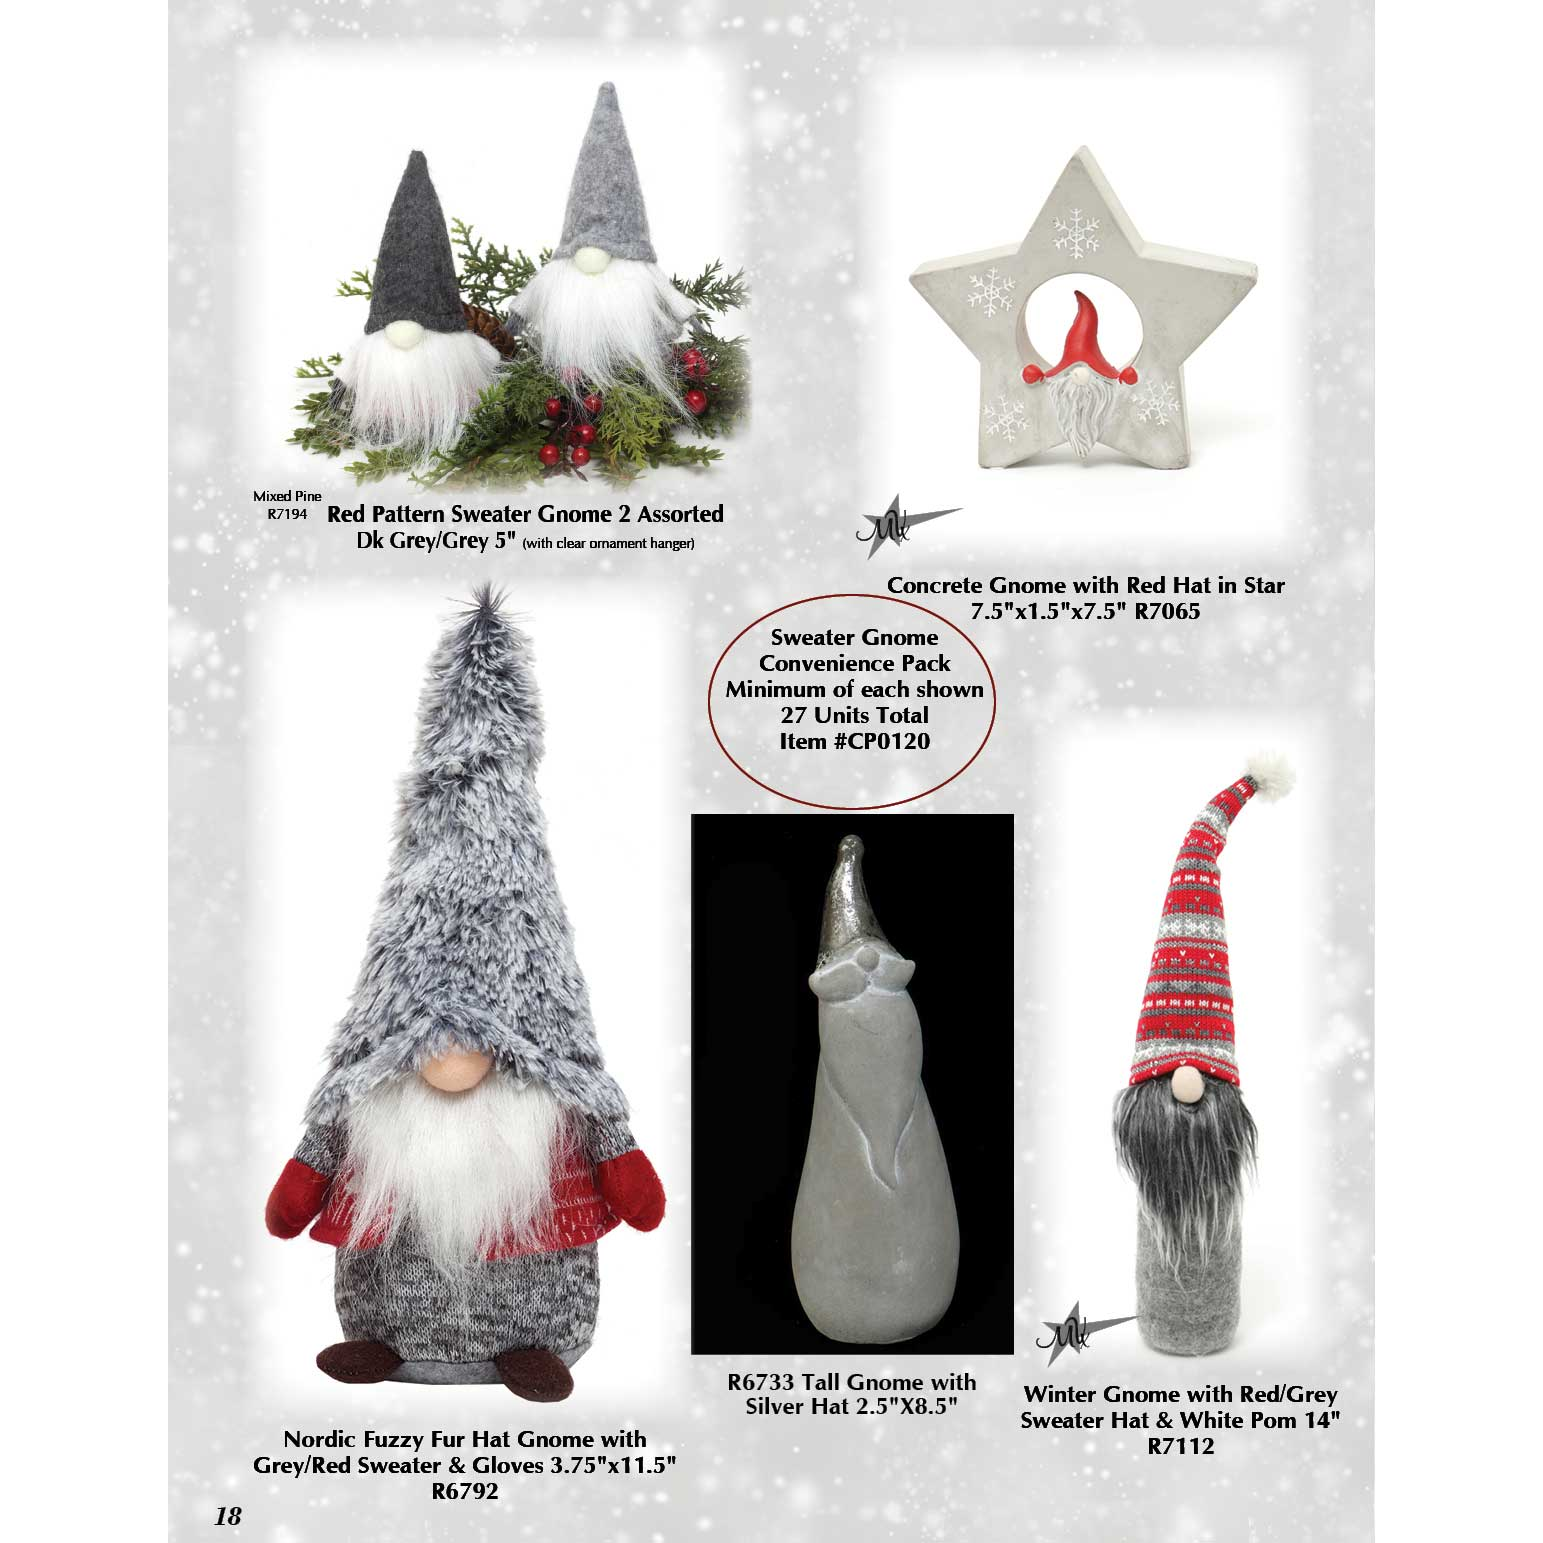 Sweater Gnome Convenience Pack